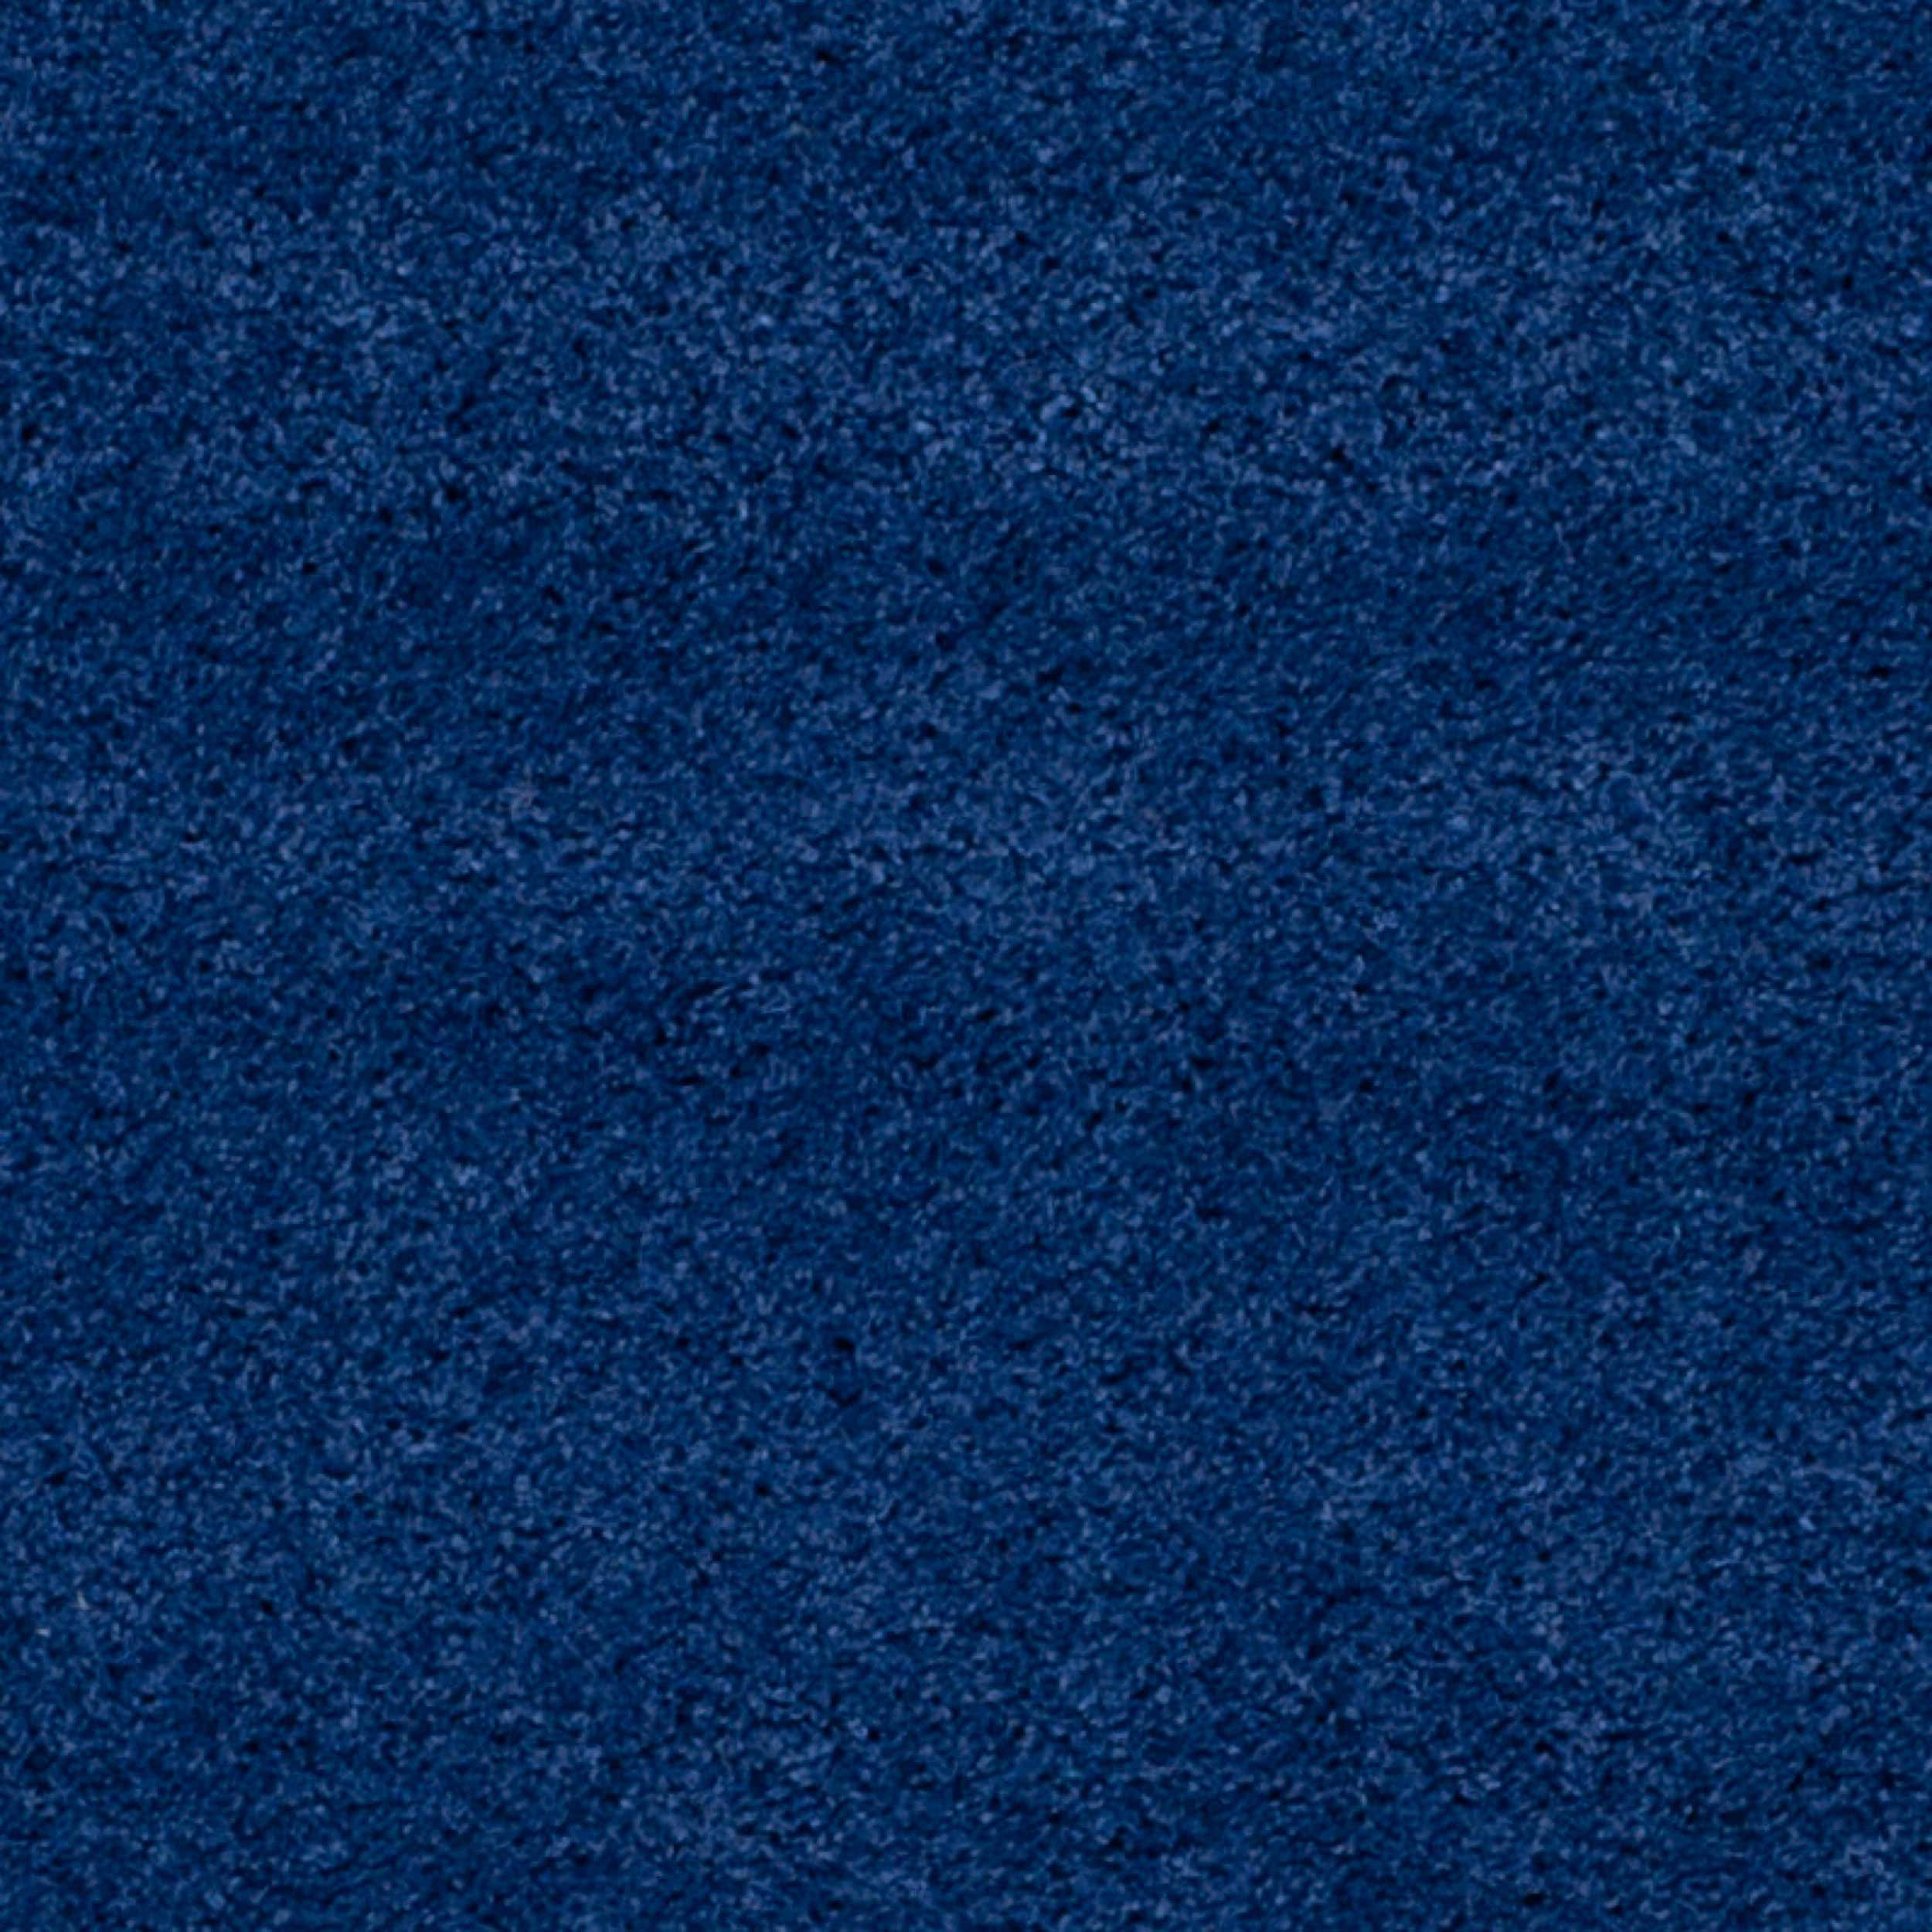 blue rug texture. Shop Safavieh Milan Shag Navy Blue Rug - 8\u00276 X 12\u0027 On Sale Free Shipping Today Overstock.com 8402848 Texture